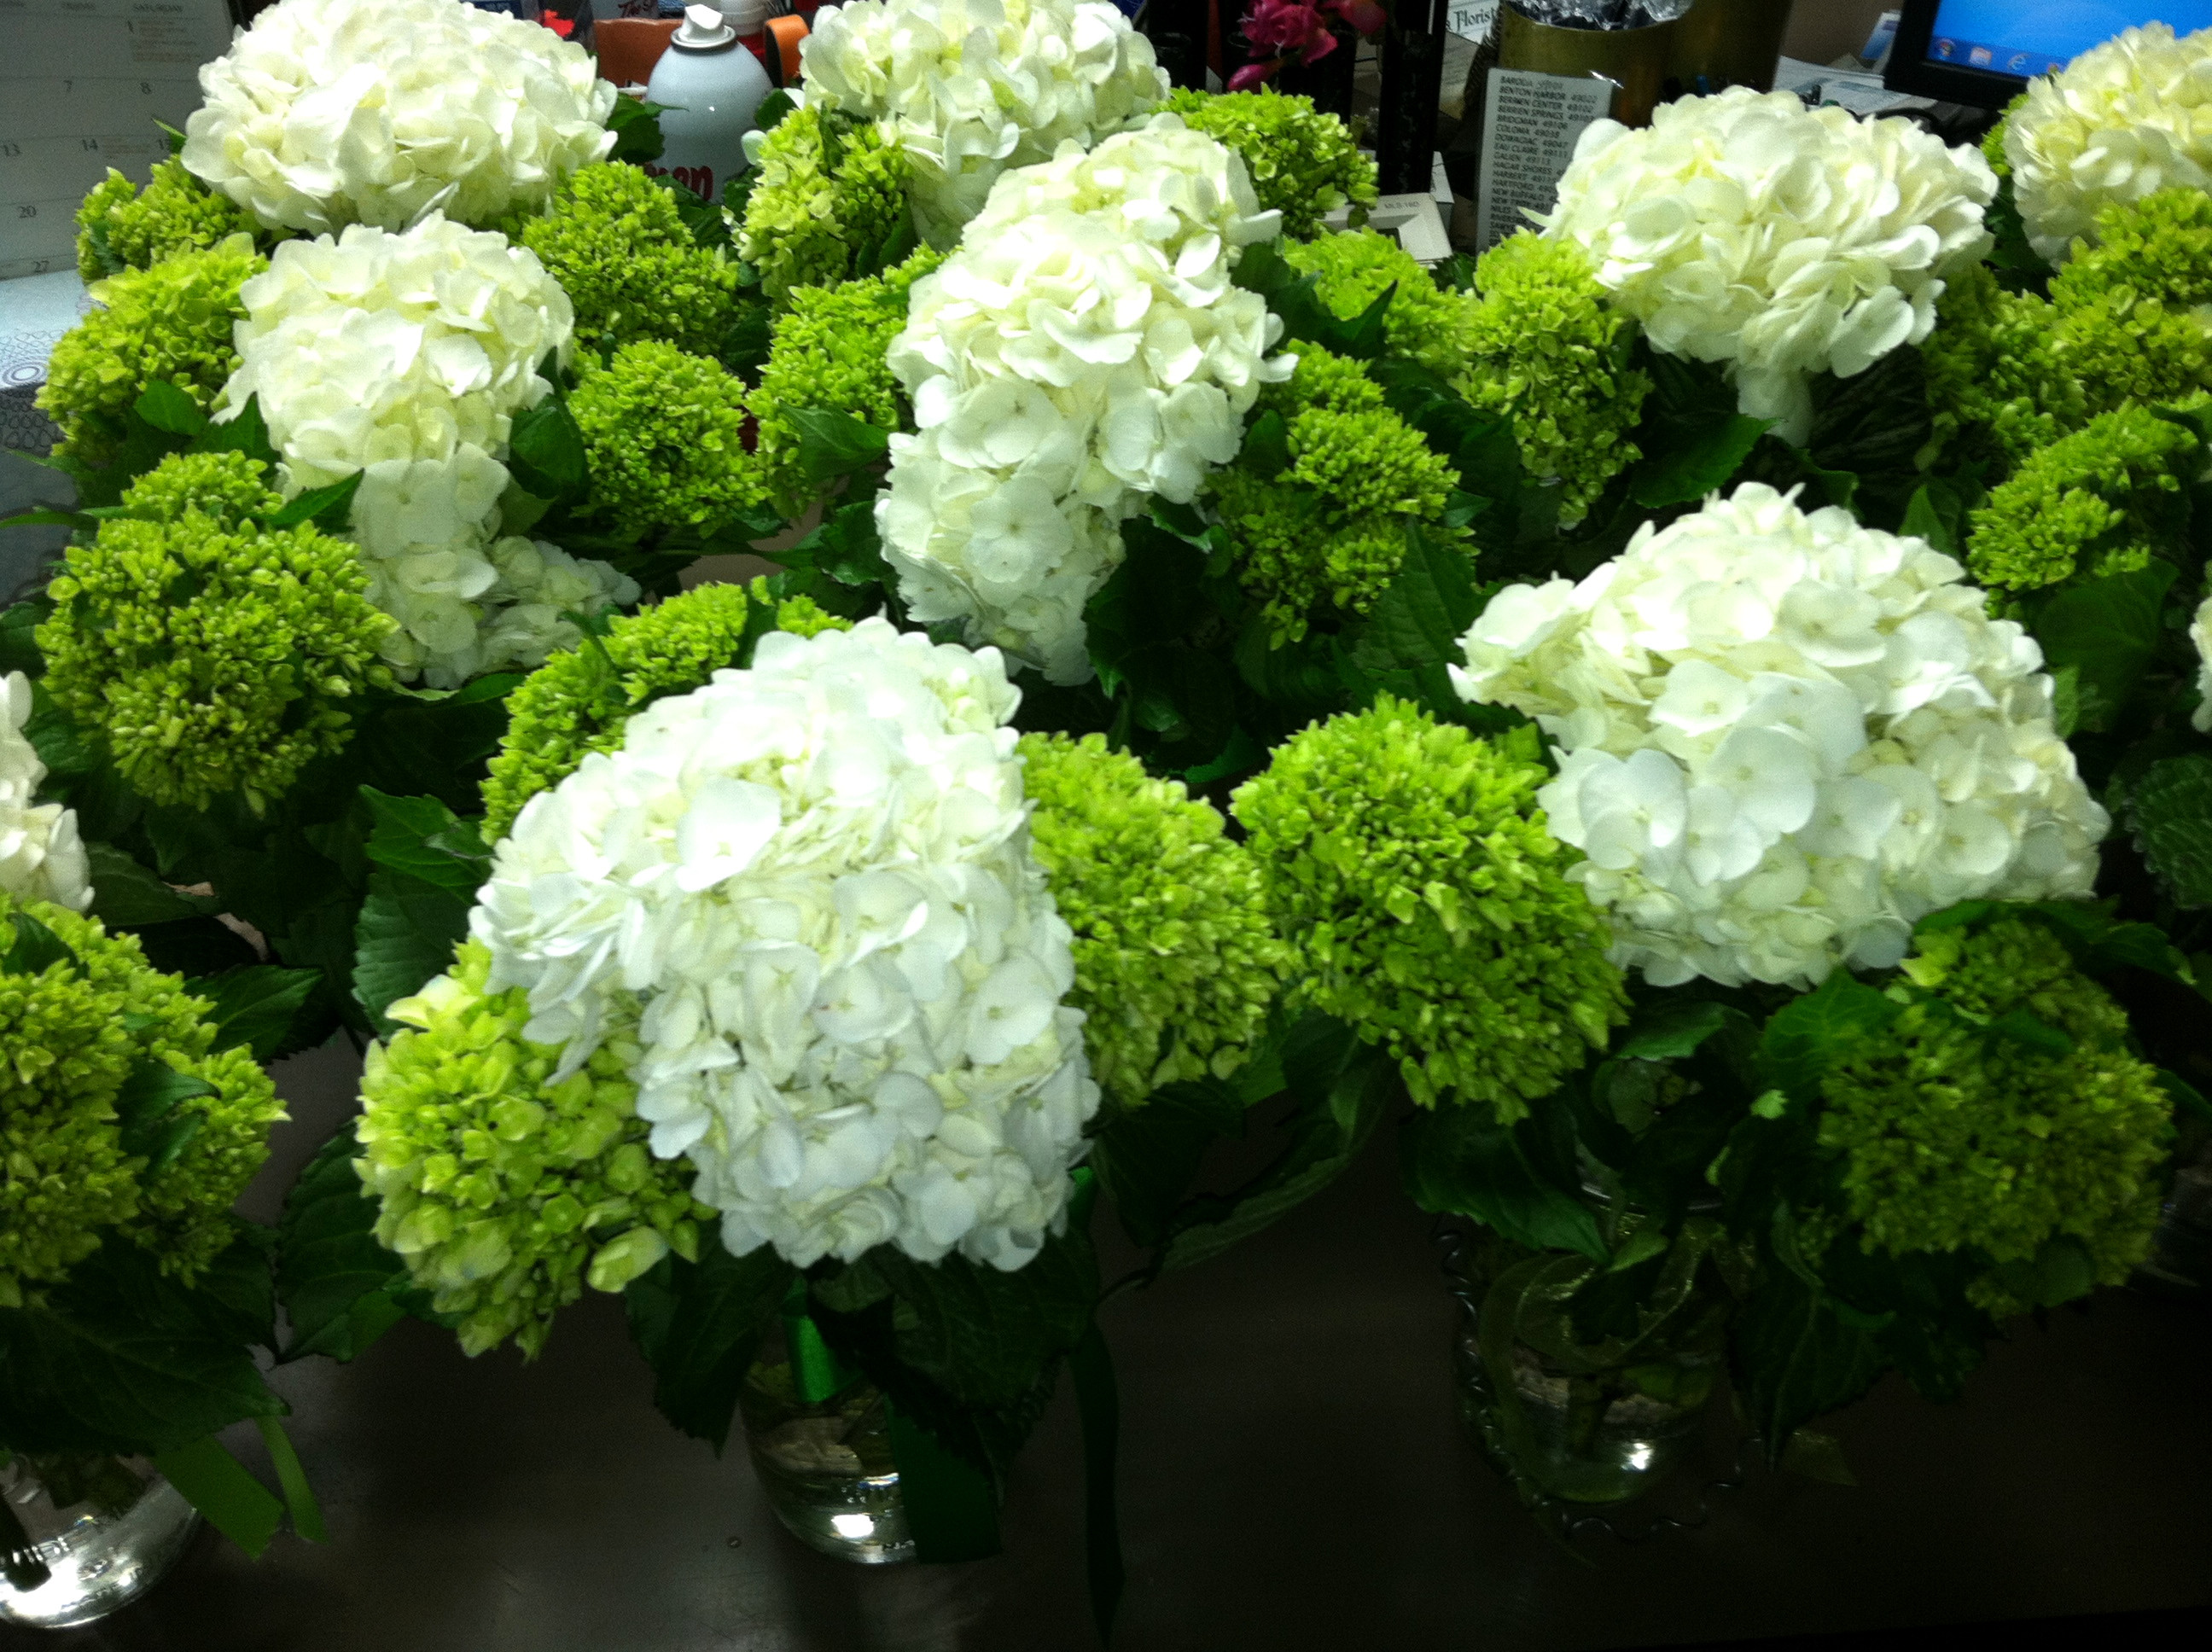 mason jar flower vase ideas of mason jar wedding decorations fresh living room vases wedding inside mason jar wedding decorations beautiful green and white hydrangea centerpieces in mason jars wedding of mason